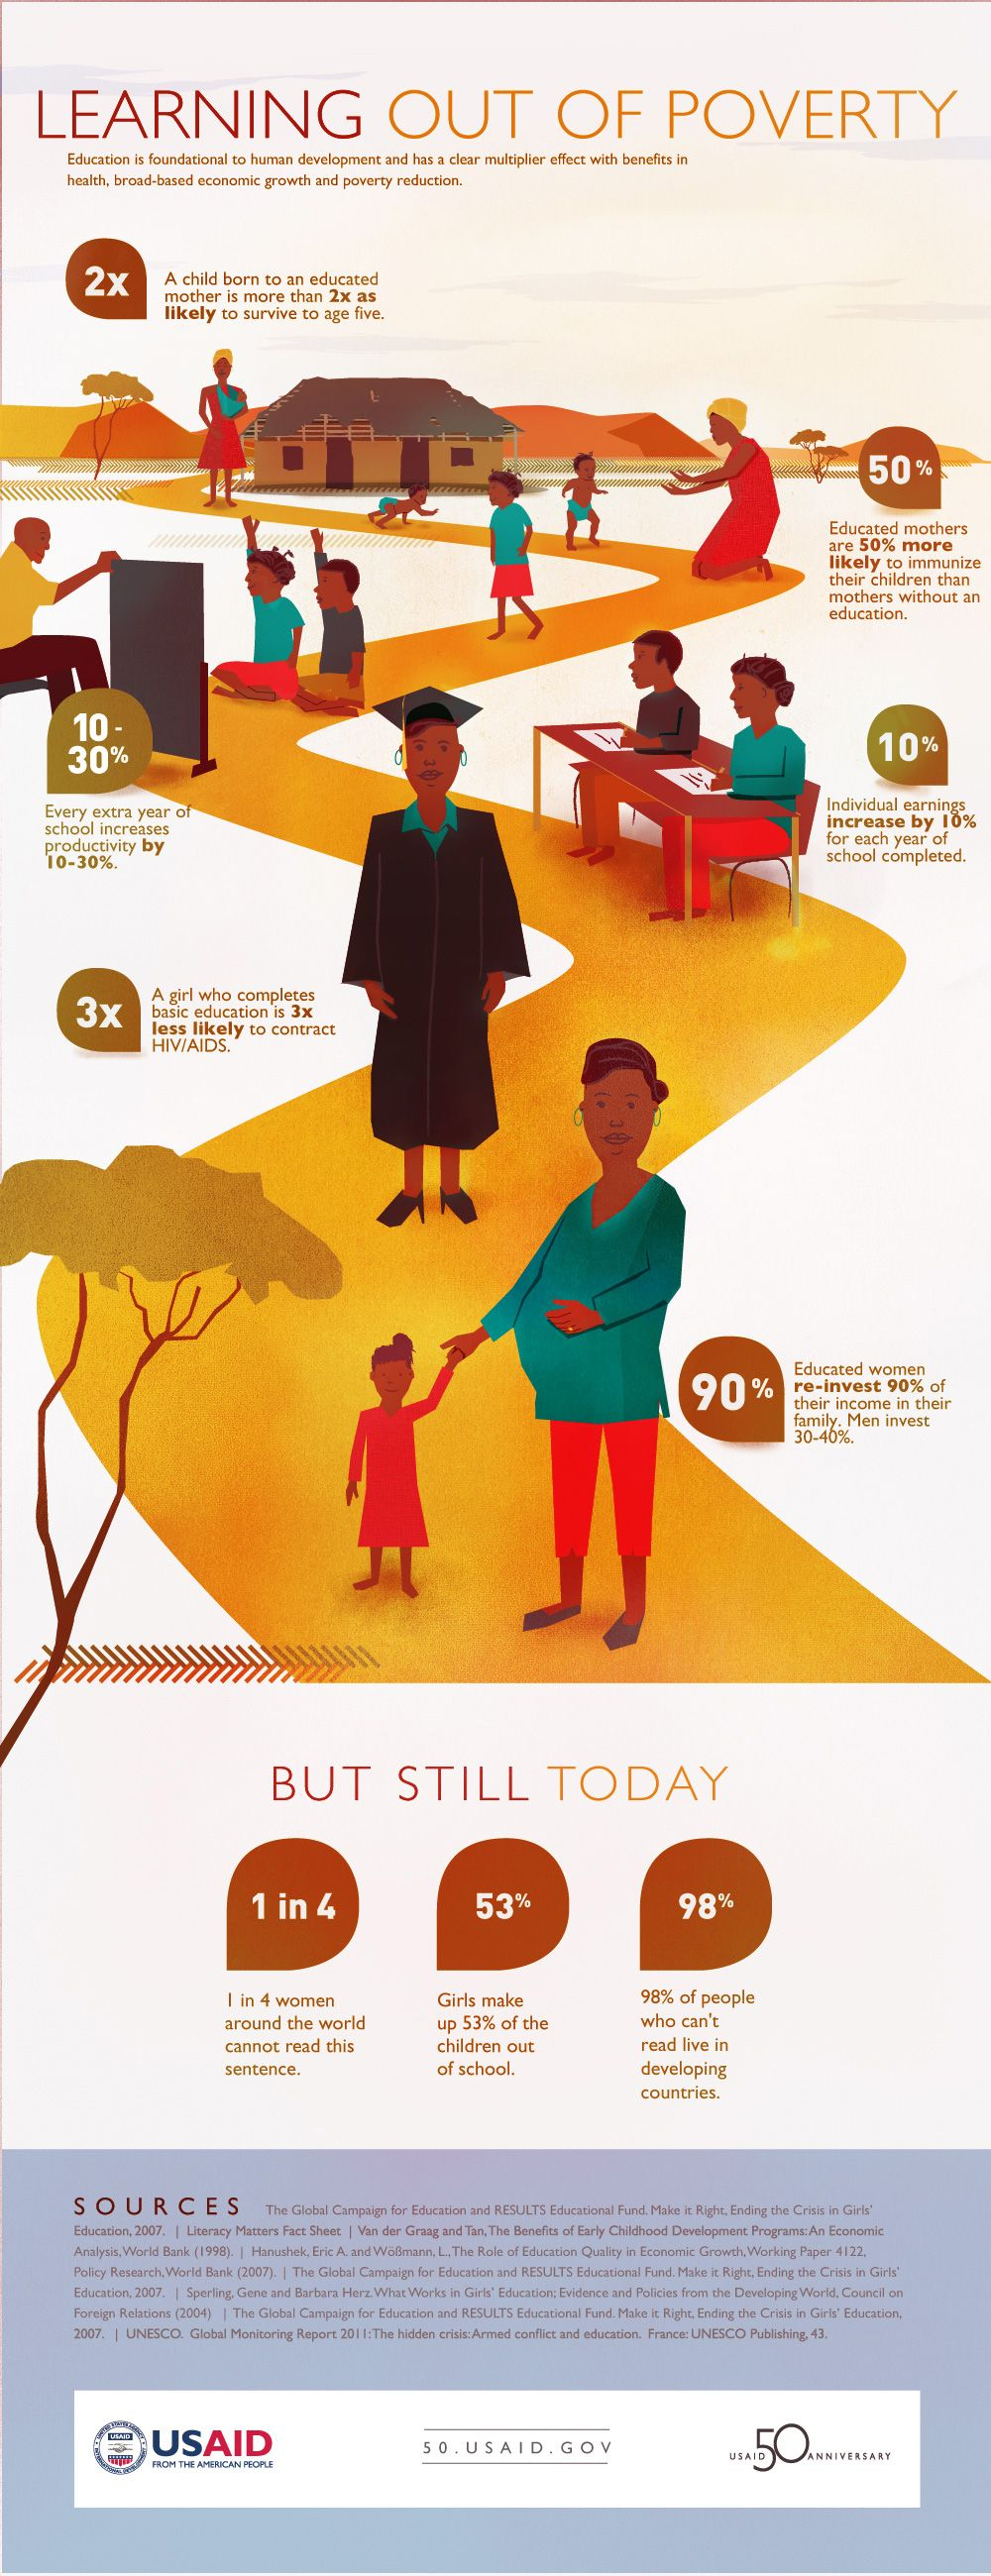 Educated Women re-invest 90% of their income in their families.  Men invest 30-40%. But still, 1 in 4 women around the world cannot read this post.